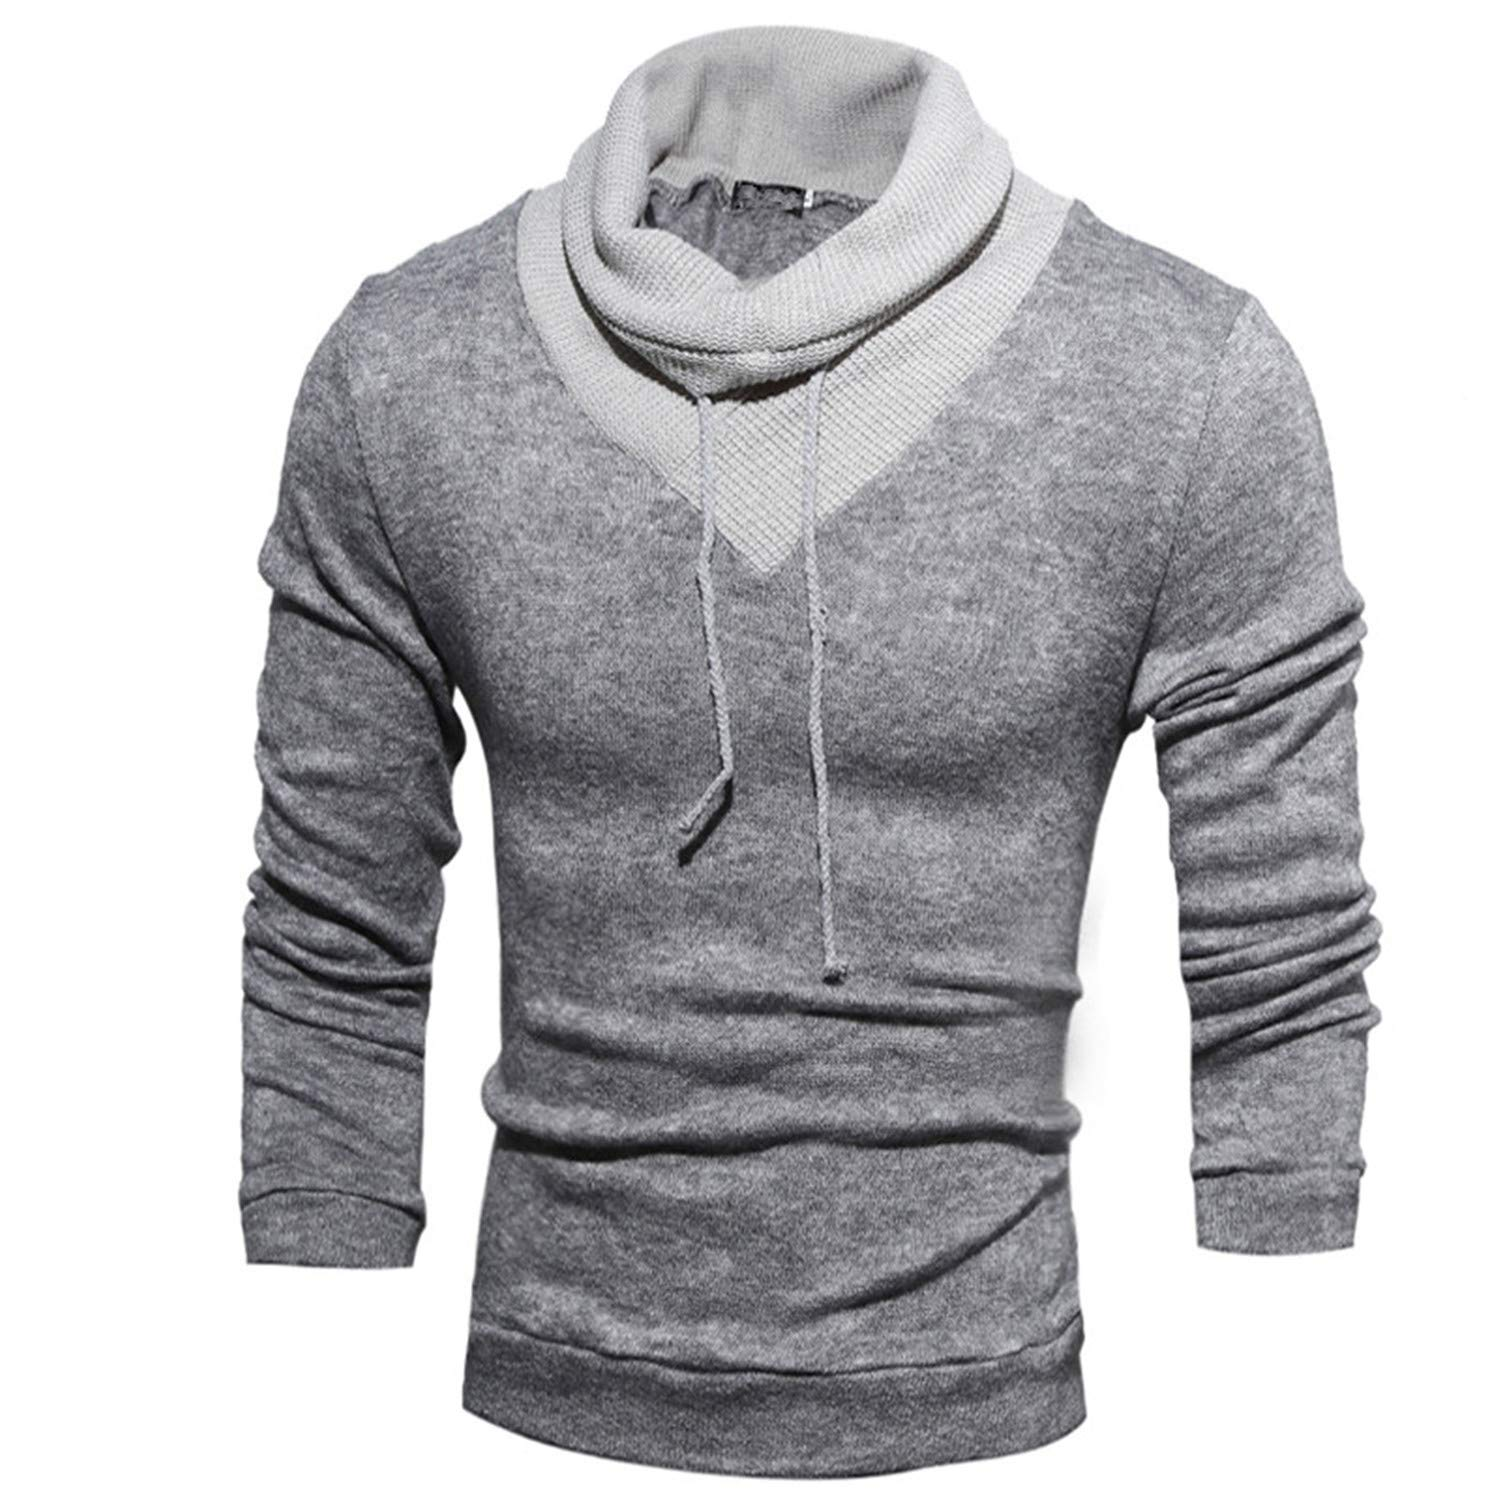 Giles Abbot Sweater Pullover Men Male Casual Slim Sweaters Men Soild Color Hedging